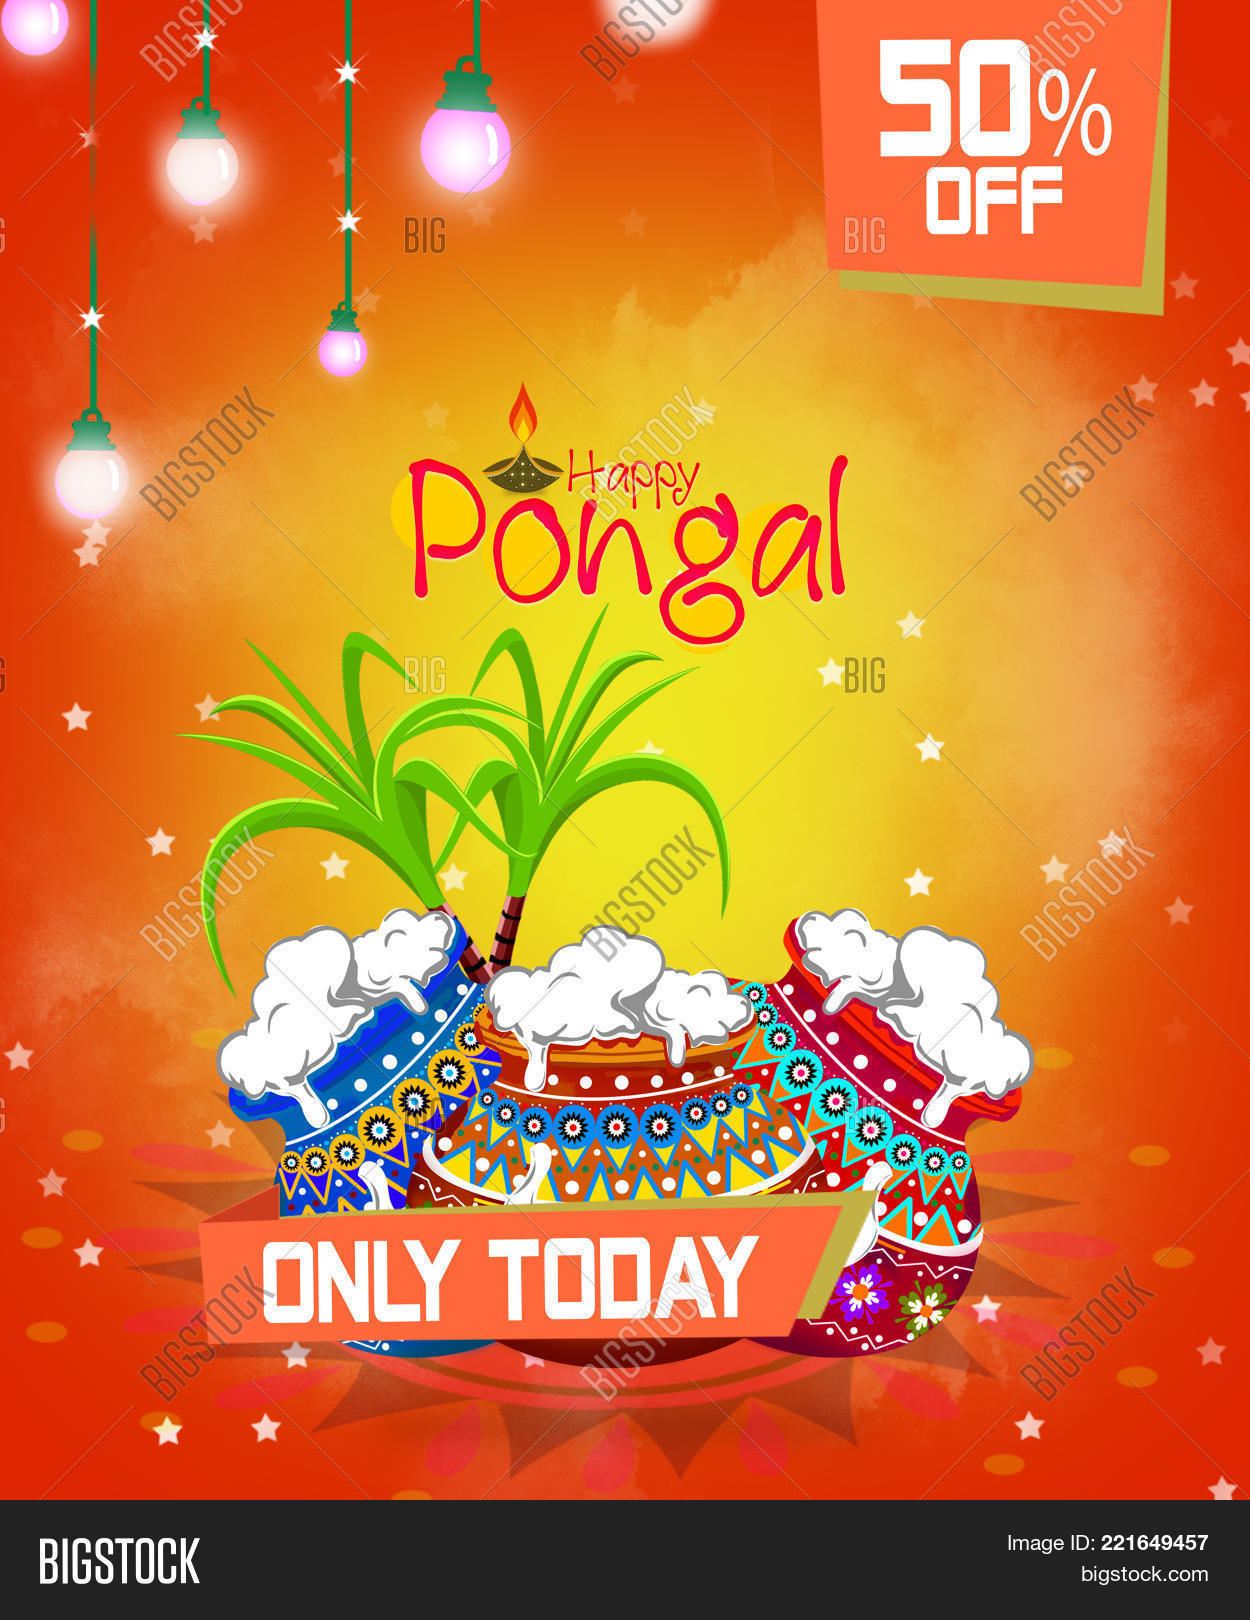 Happy Pongal Greeting Image Photo Free Trial Bigstock